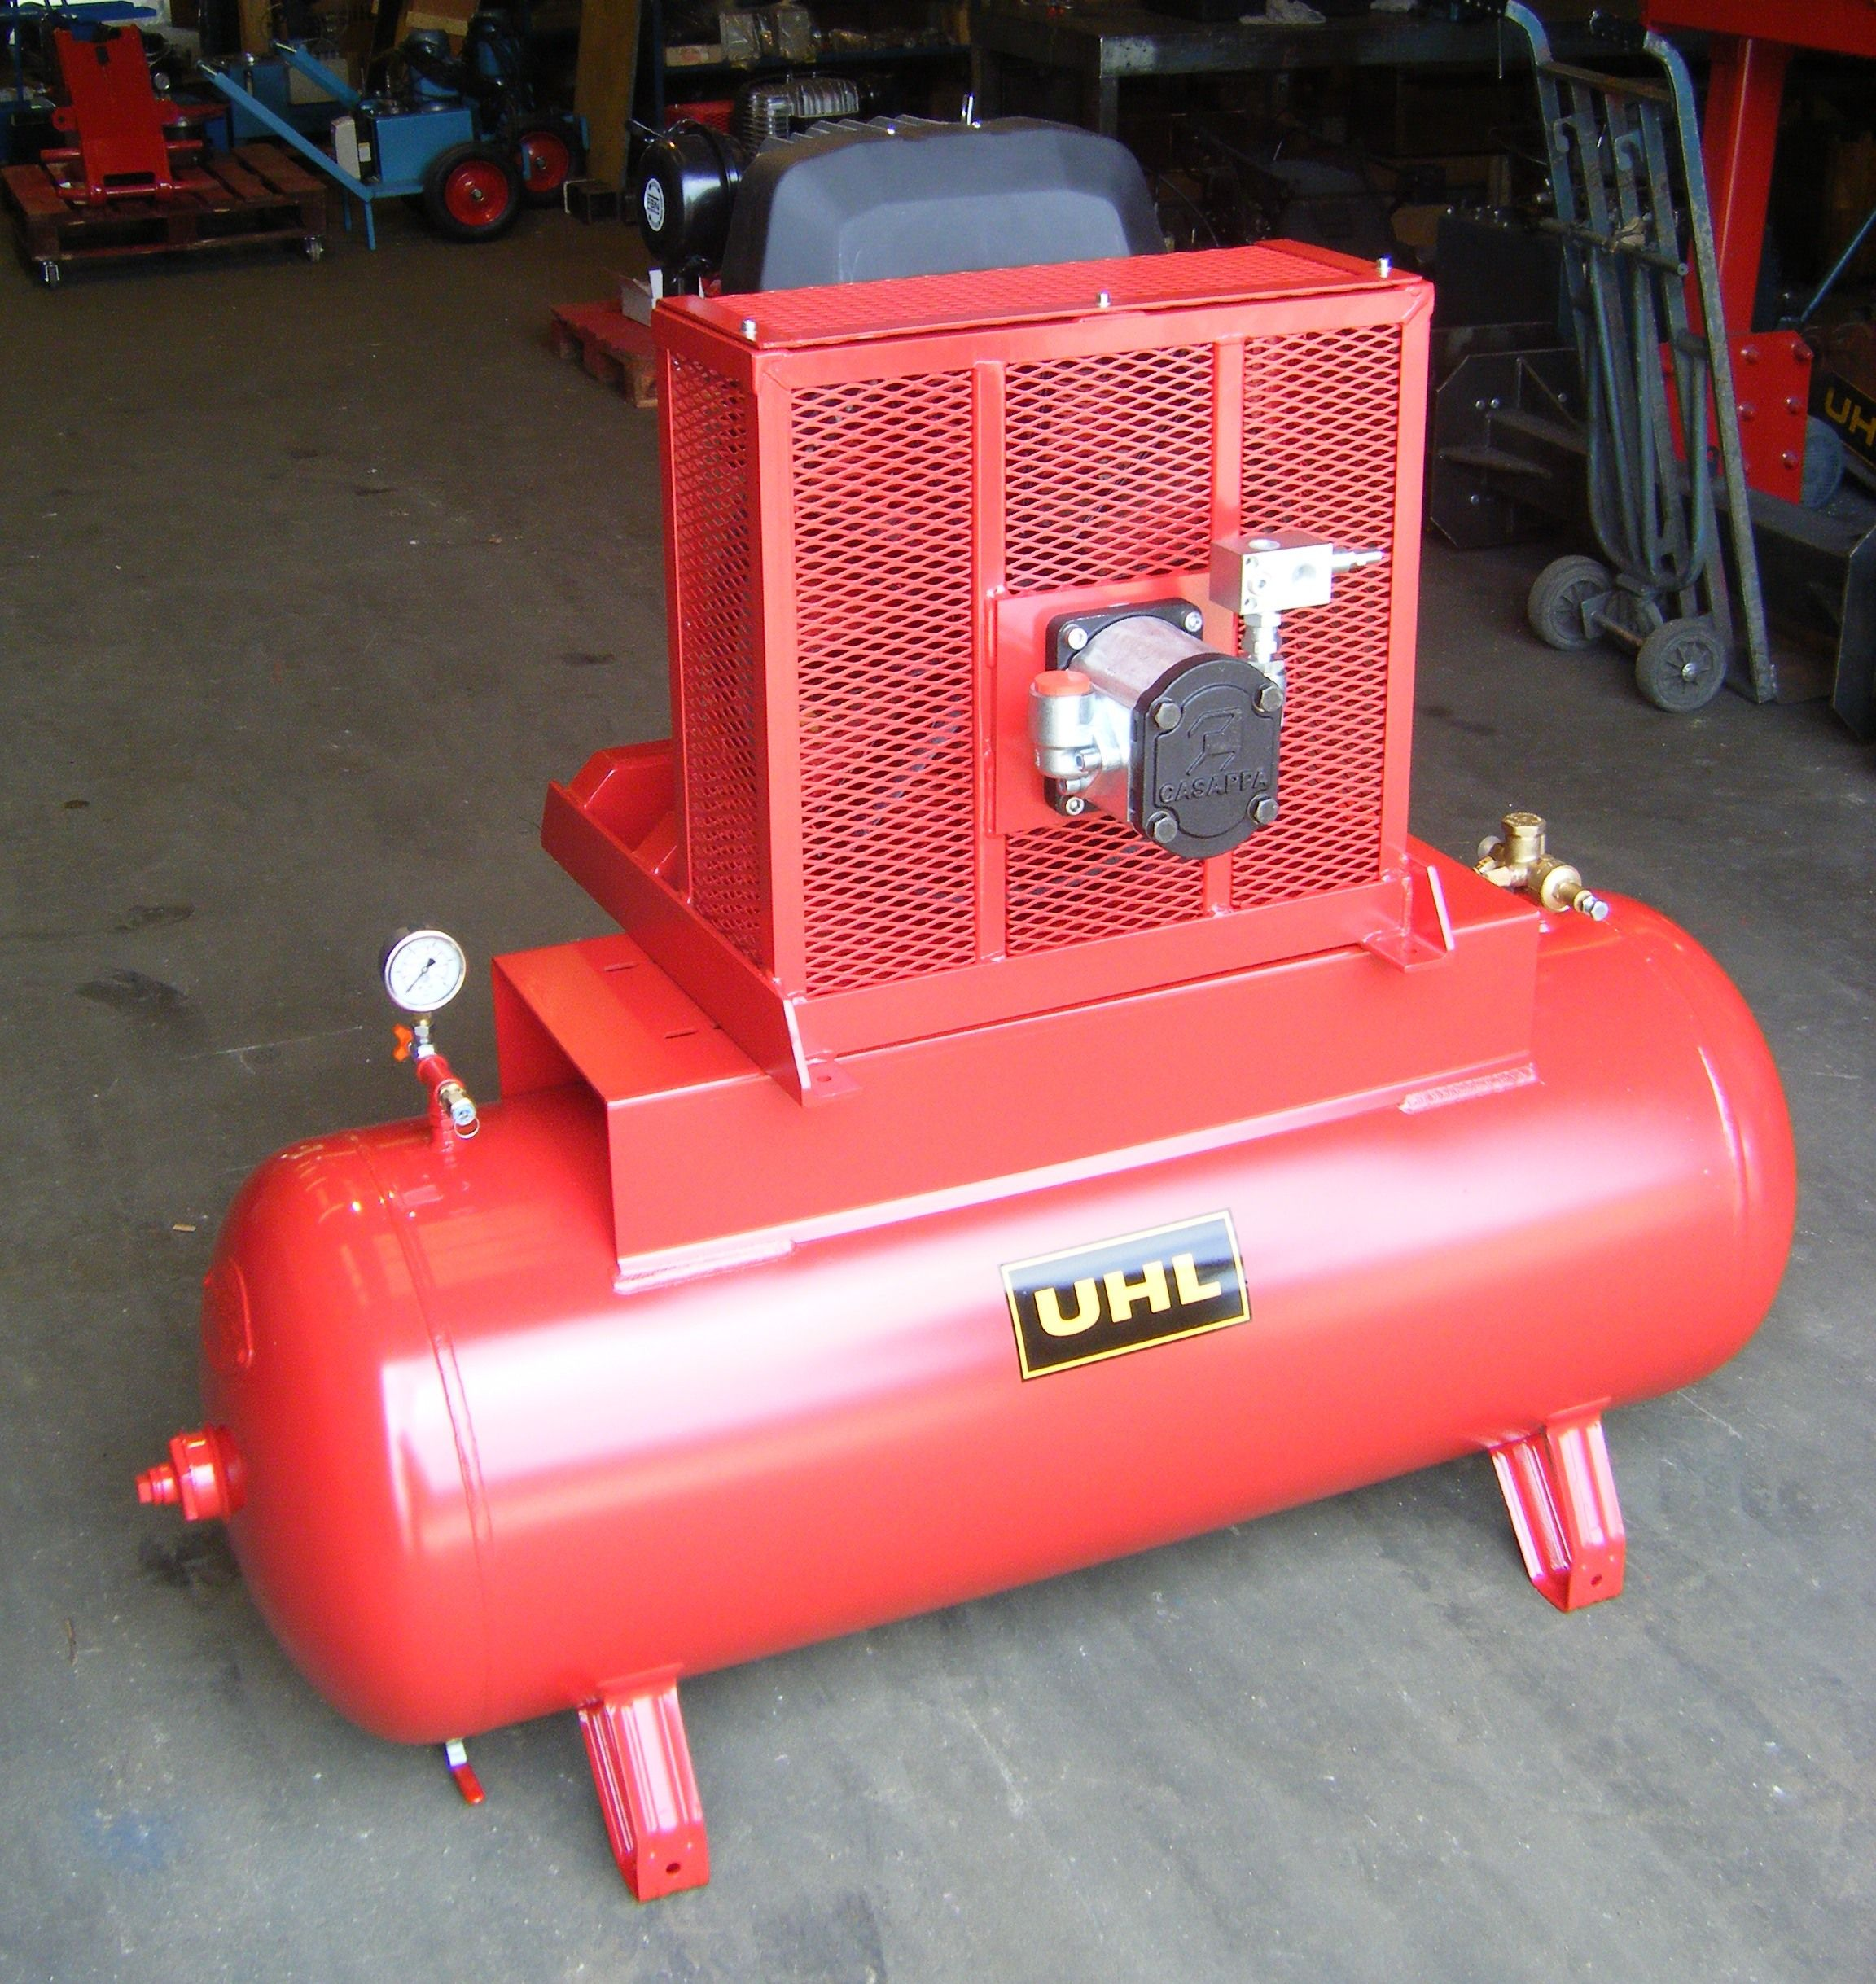 It's a UHL TRC42 hydraulically powered compressor! The